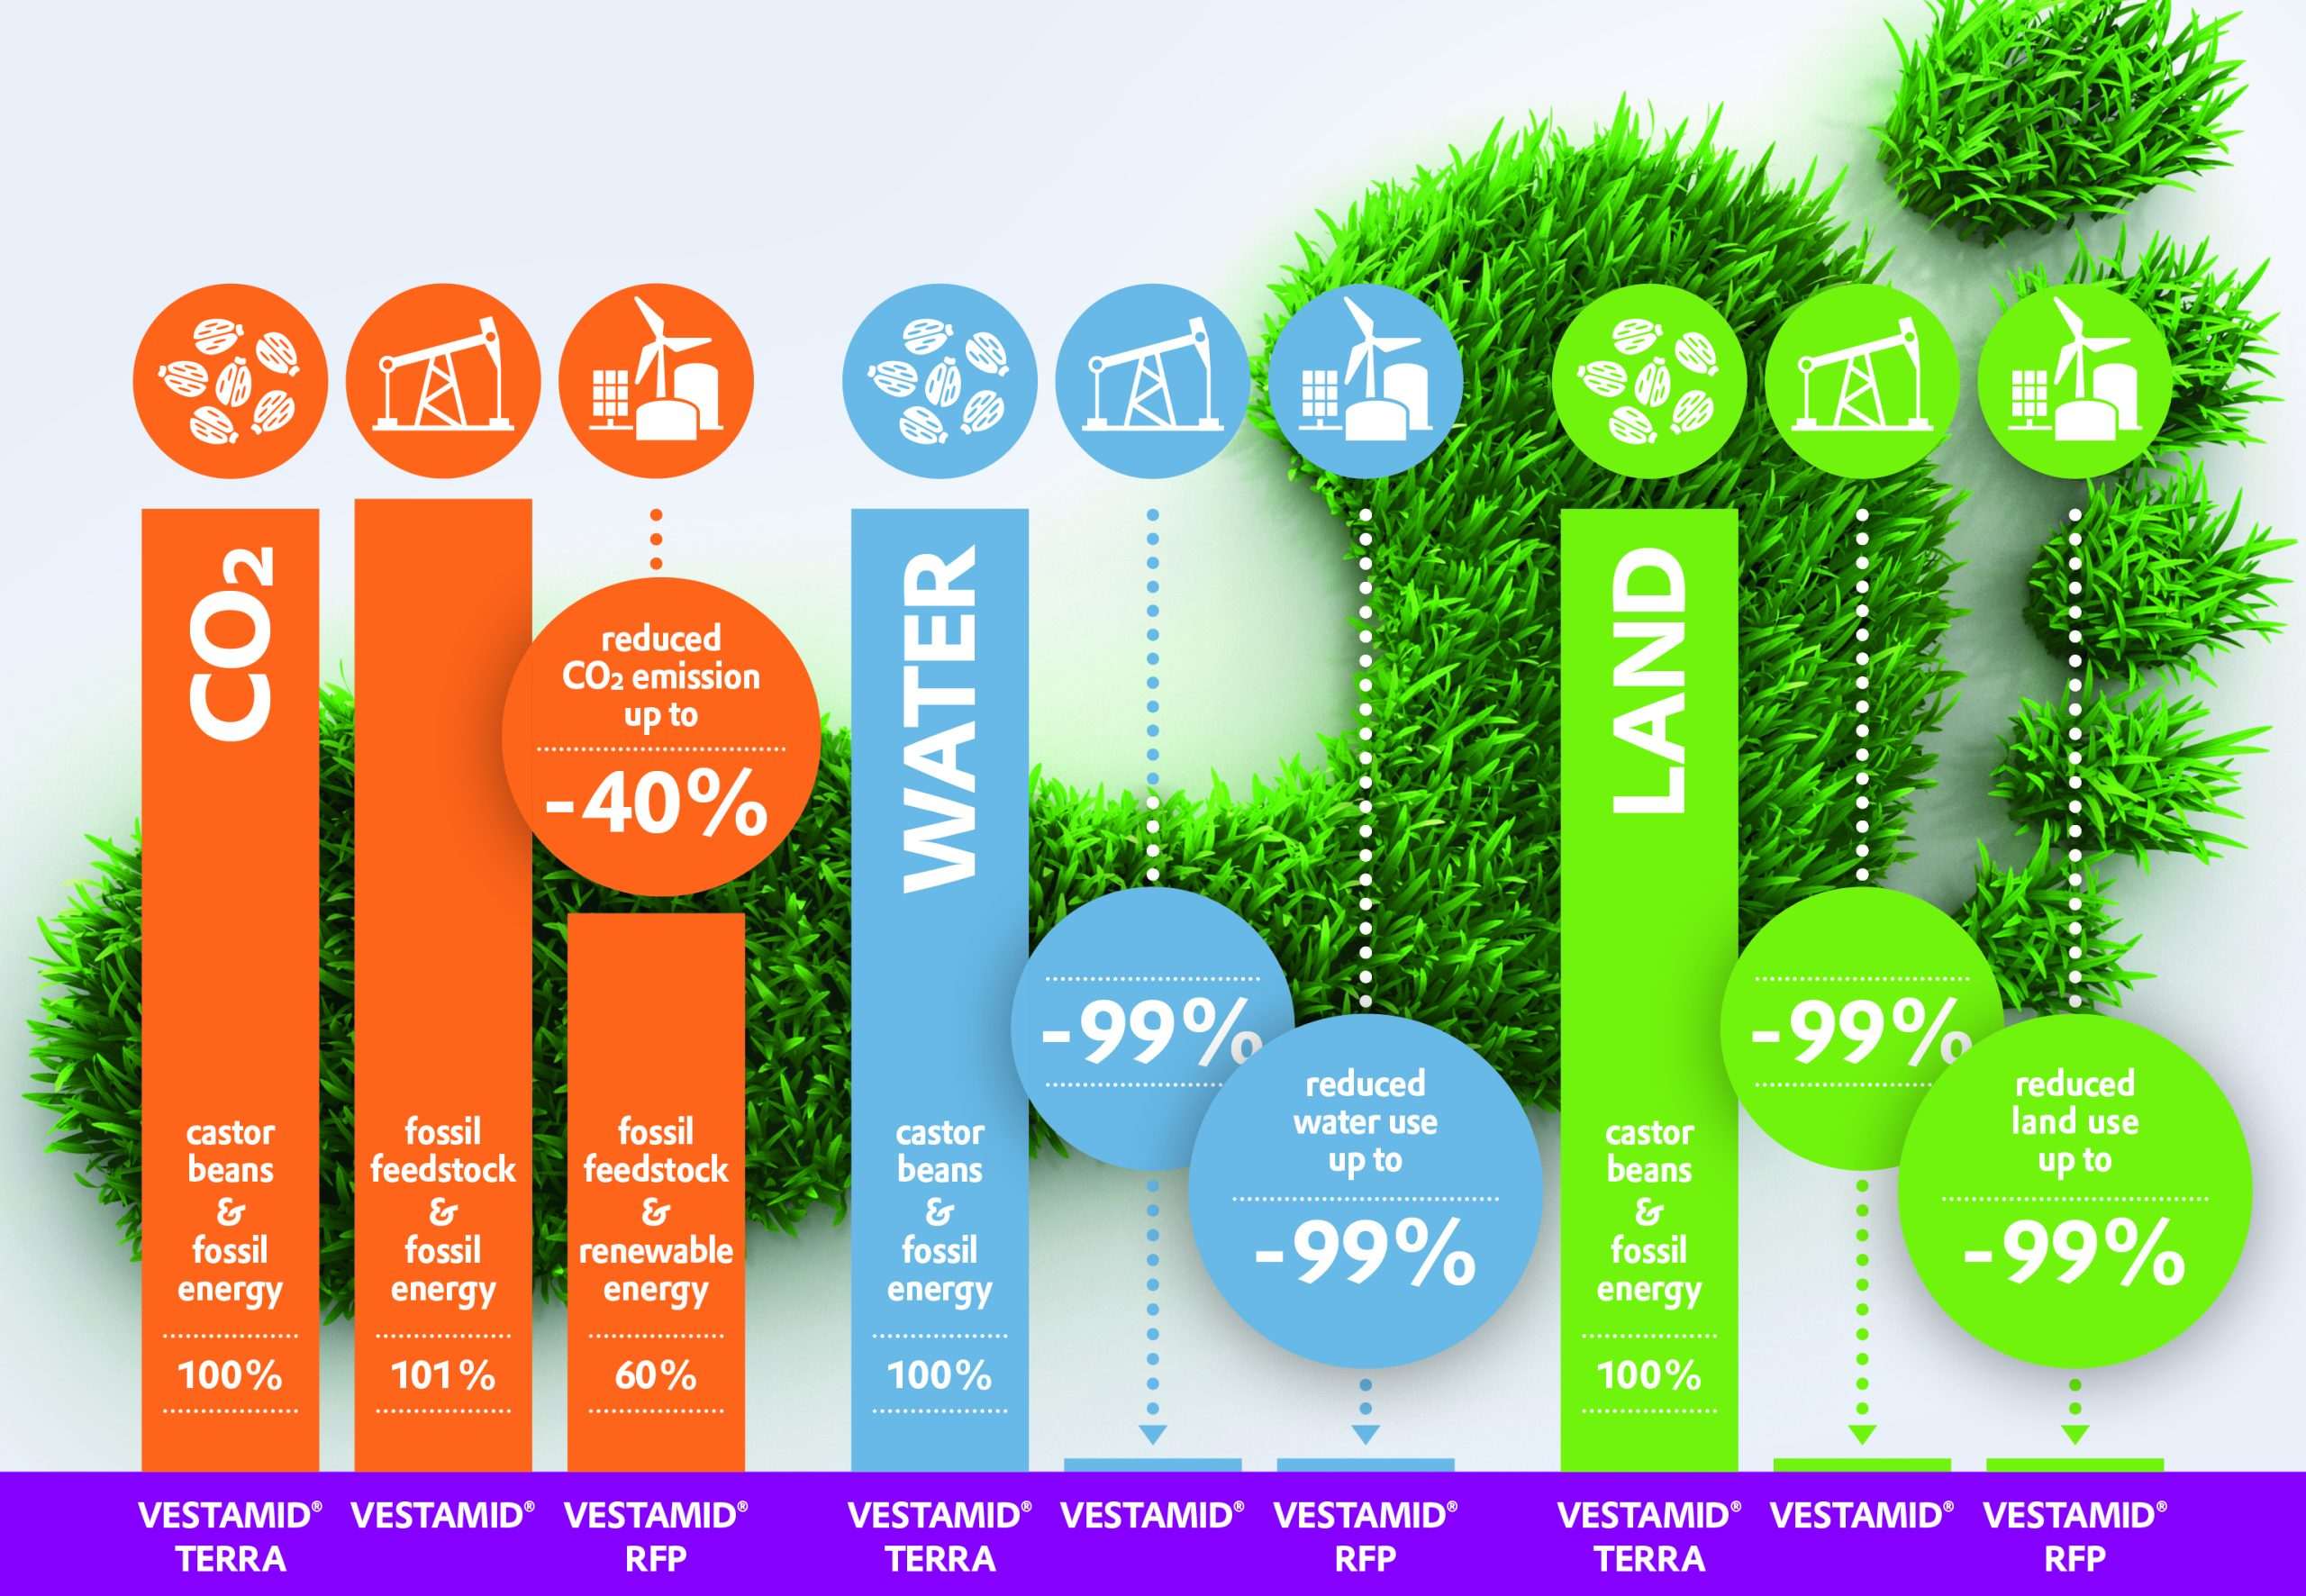 Comparison of the CO2 footprint, water consumption and land use of conventionally produced polyamide 12, biobased long-chain polyamides and with biomethane-produced PA12. Image via Evonik.